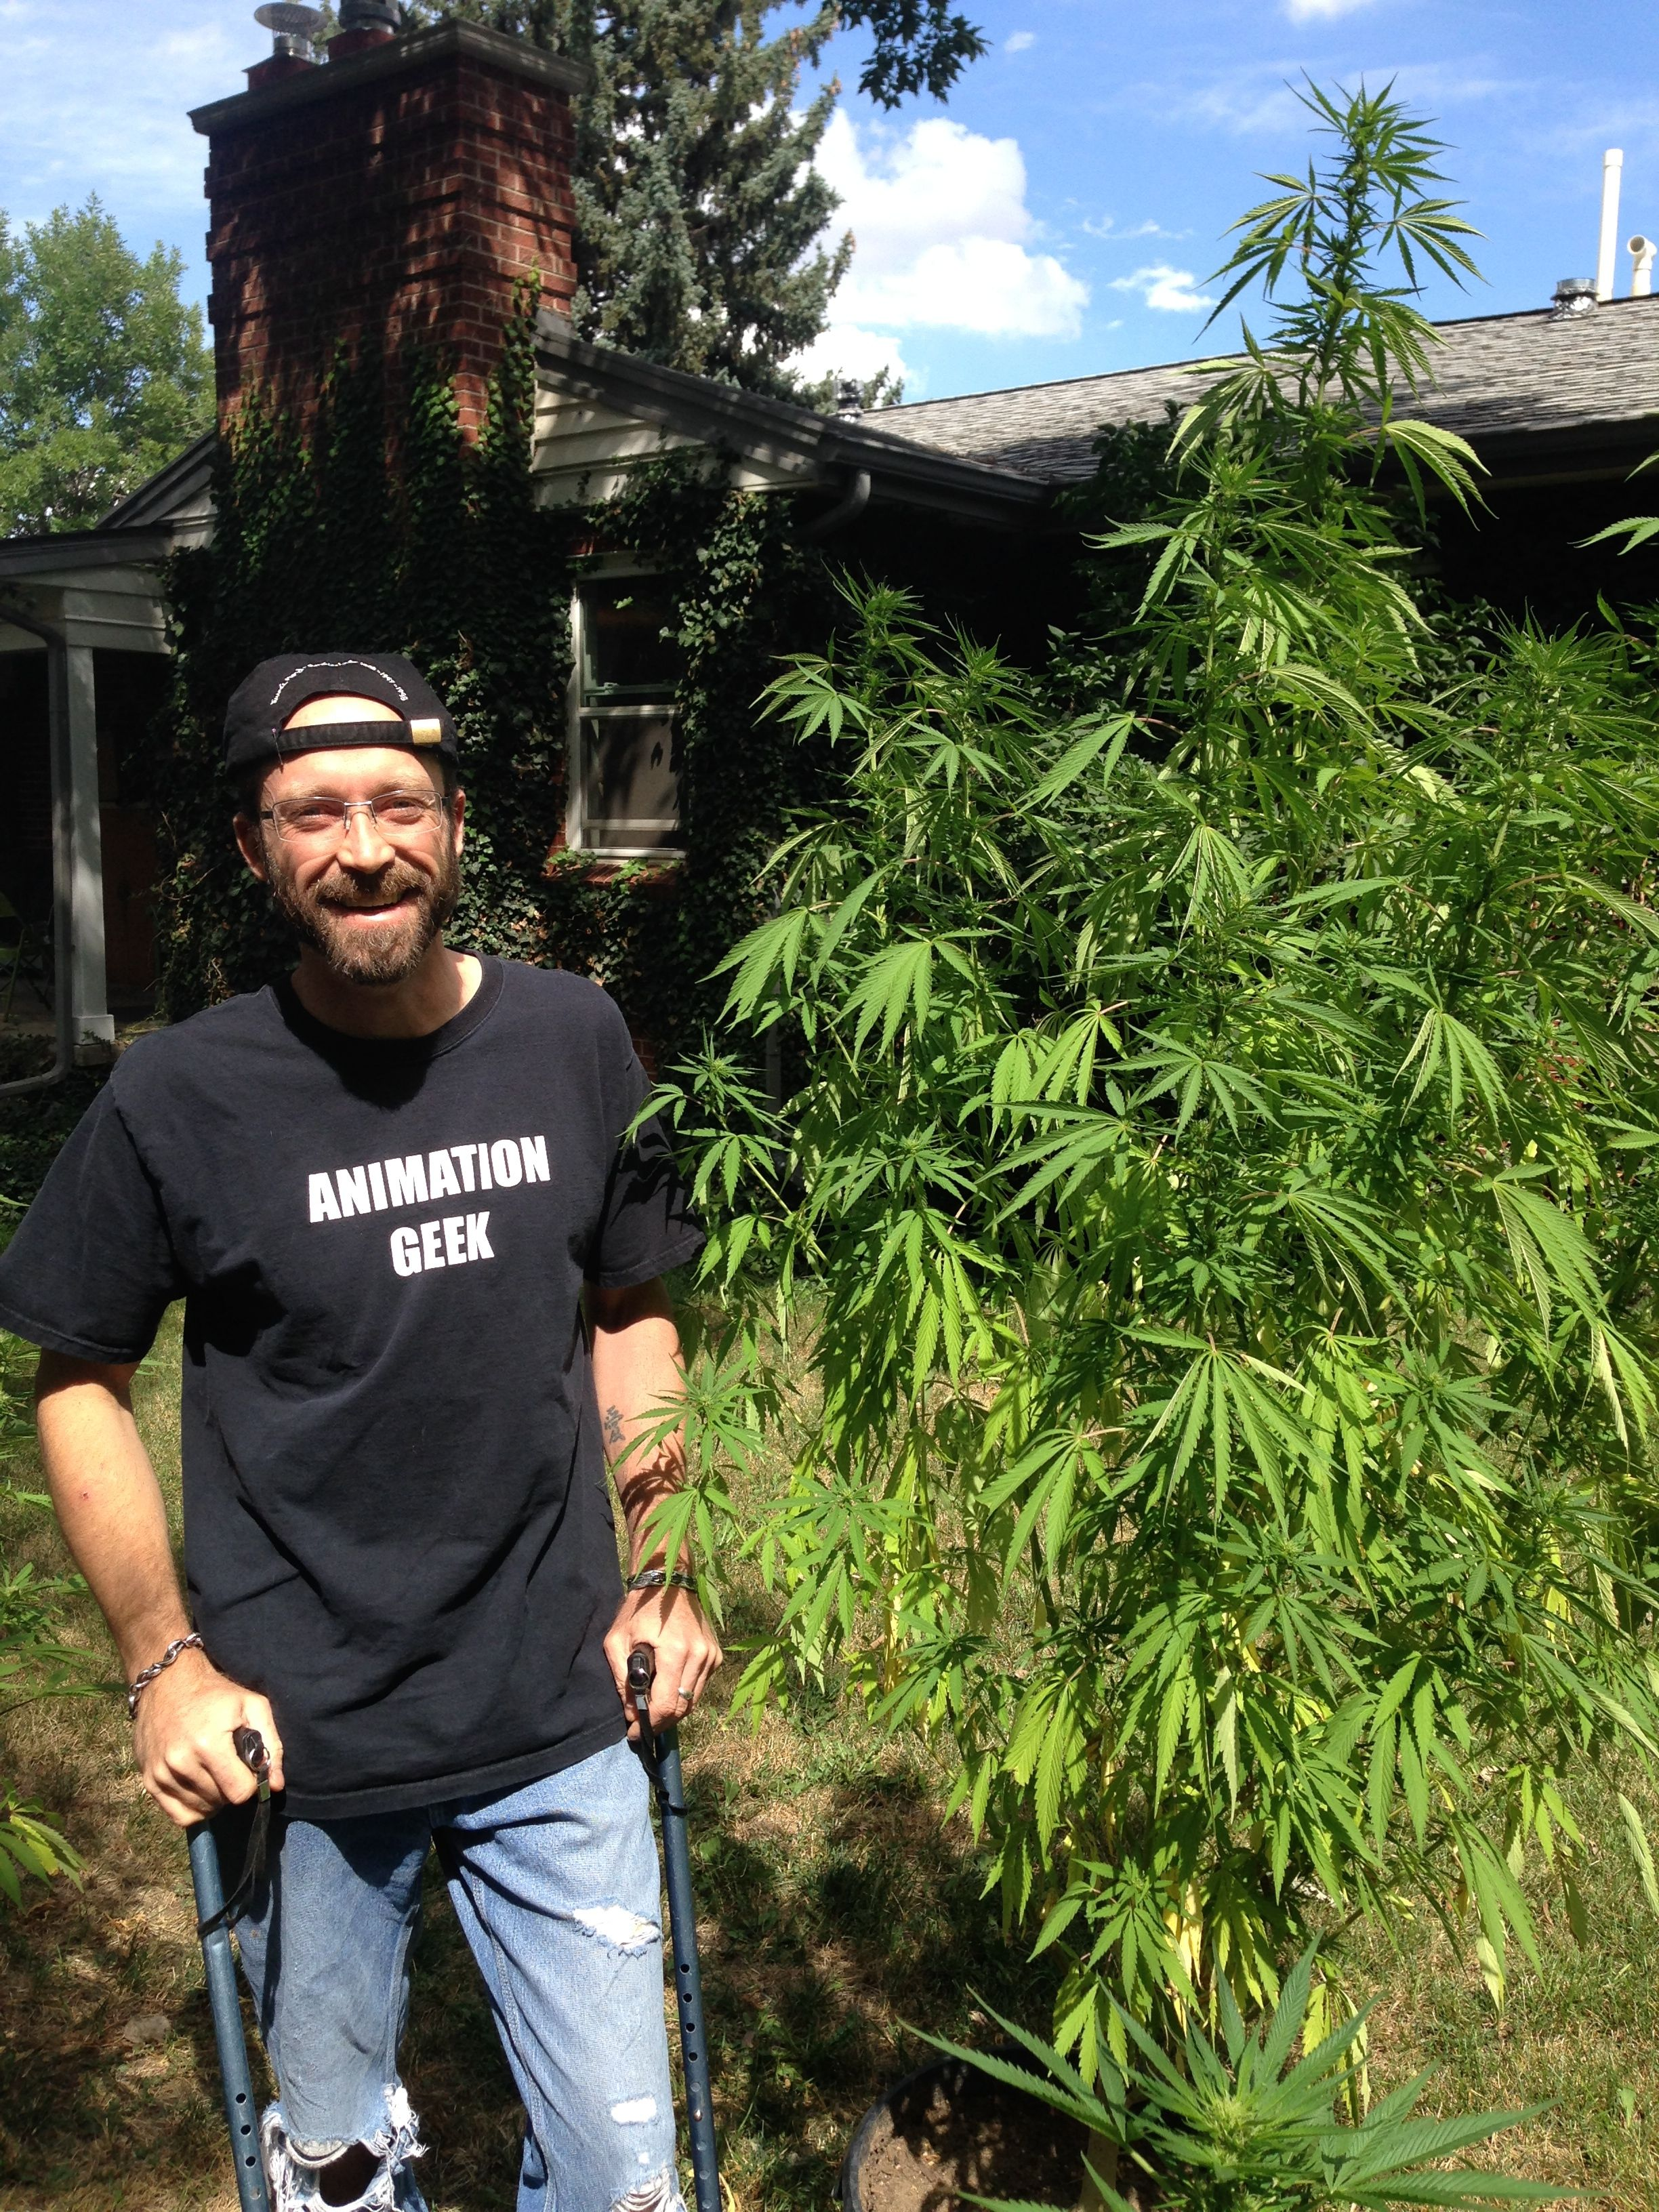 Snapshot from an interview with cannabis leader Jason Lauve. Jason and I have been friends in the industry for 7 years now and we both have a goal to educate the masses while pushing cannabis into the logical and respected light it deserves. Jason is a co author of the Hemp bill that passed in CO and was adopted at the Federal Level which became the US Farm Bill allowing farmers in the US to grow Hemp for the first time in 80 years! Way to go Jason! http://www.lauve.com/